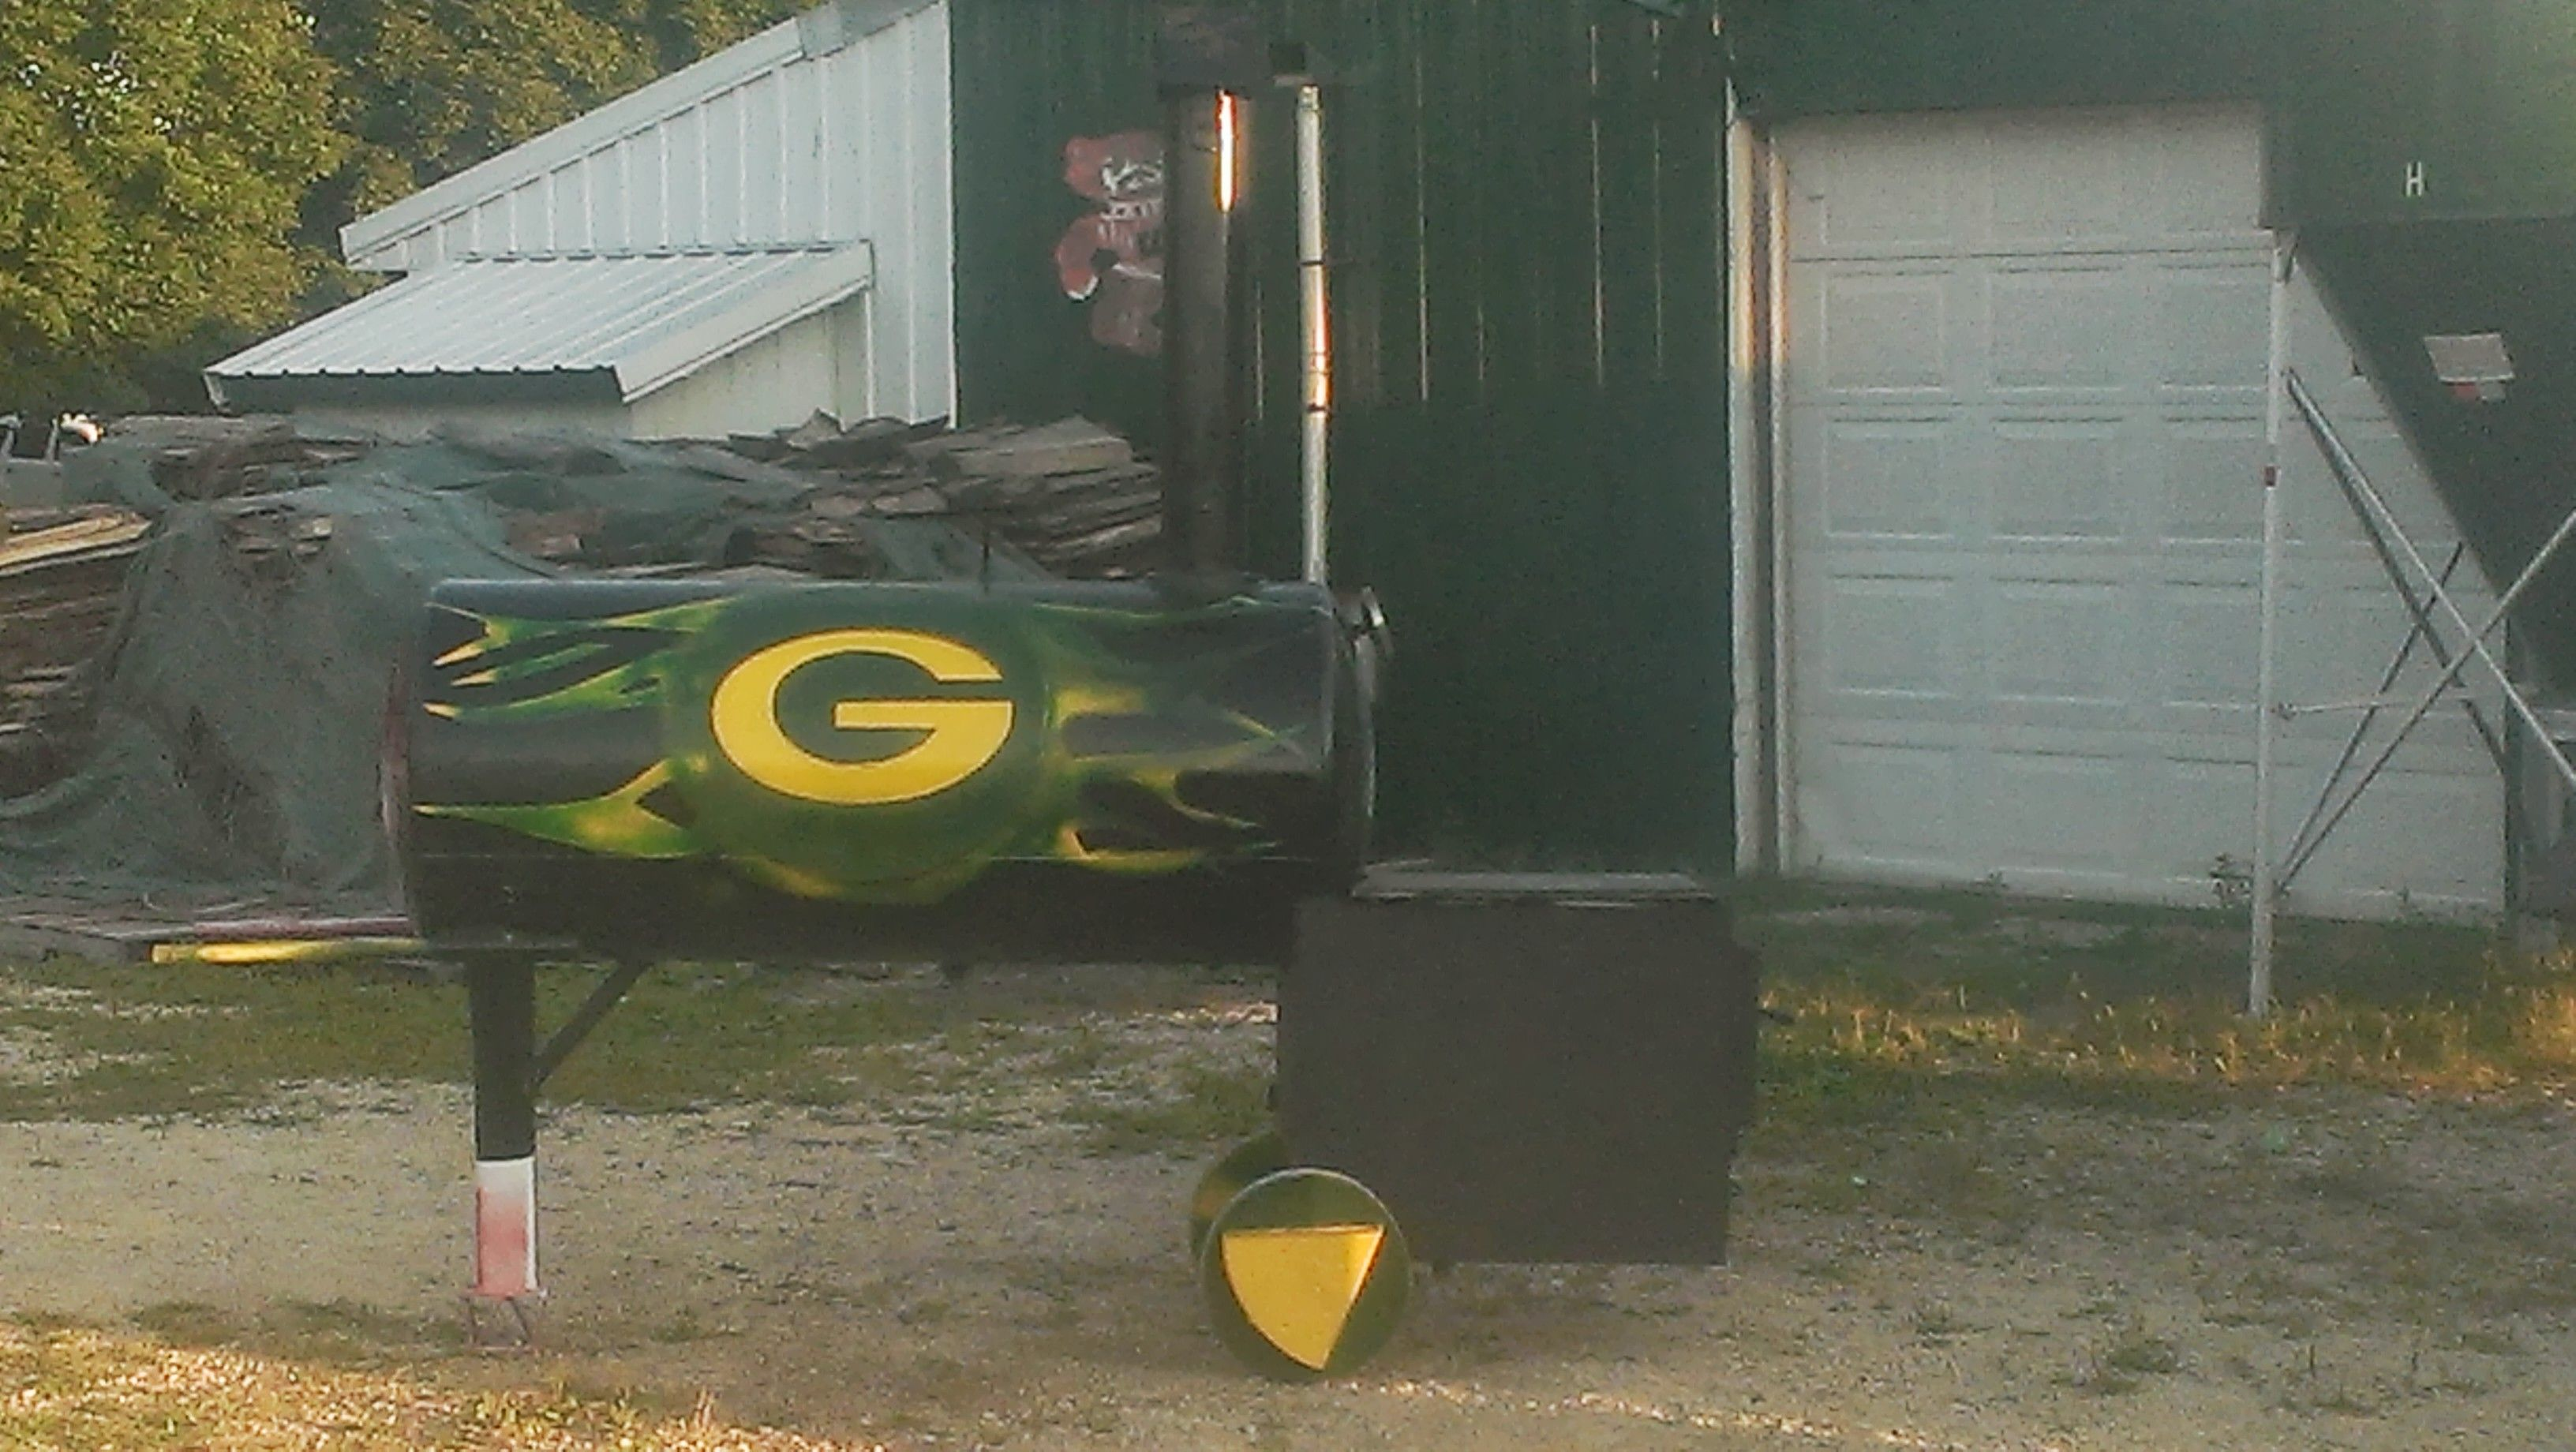 Green Bay Packers Themed smoker I just finished building, Packers from this side, and U of W from the other, so cool.